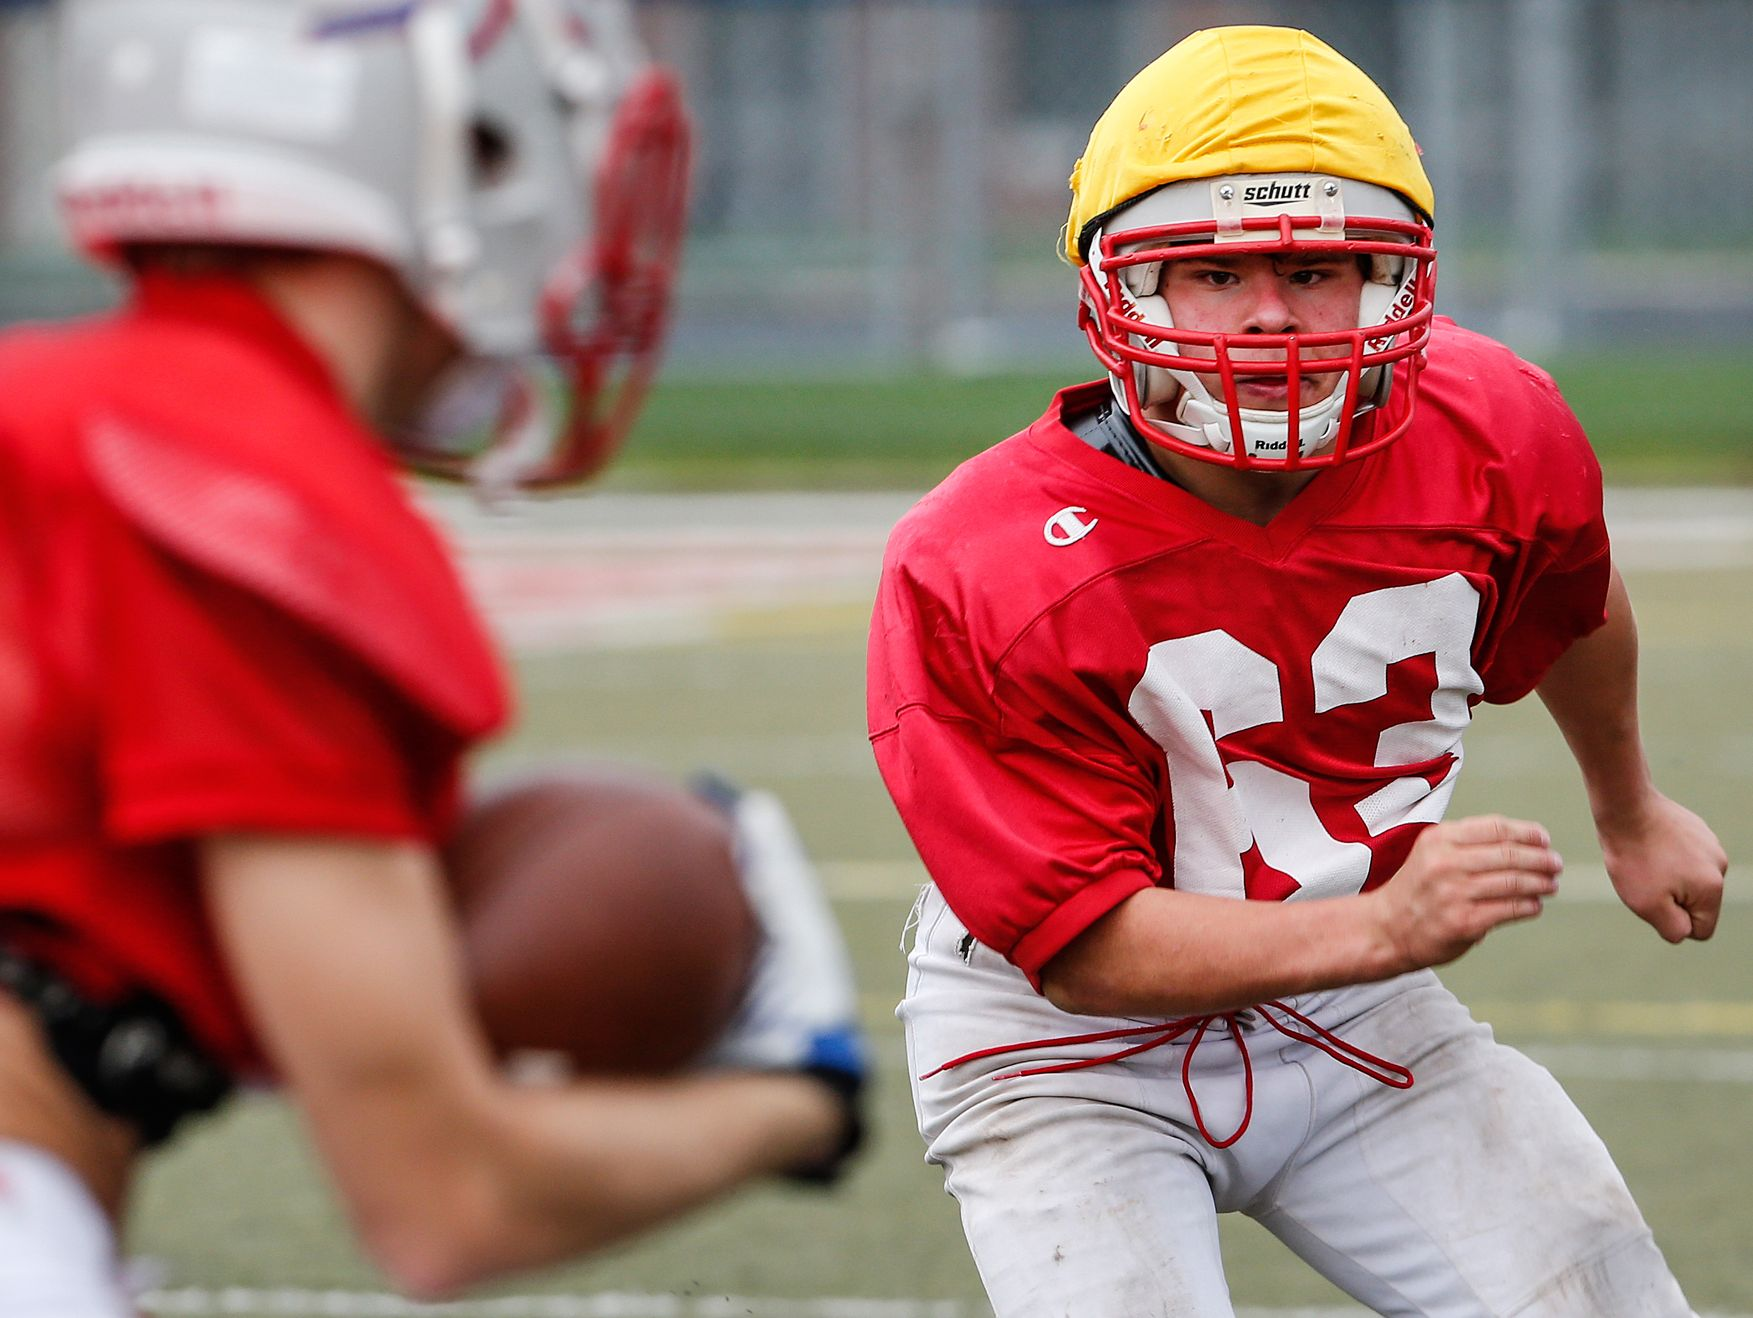 Roncalli Rebels nose tackle Max Quebe, a 5-foot-2-inch, 135-pound Russian adoptee, eyes a ball runner during practice on Oct. 19, 2016.